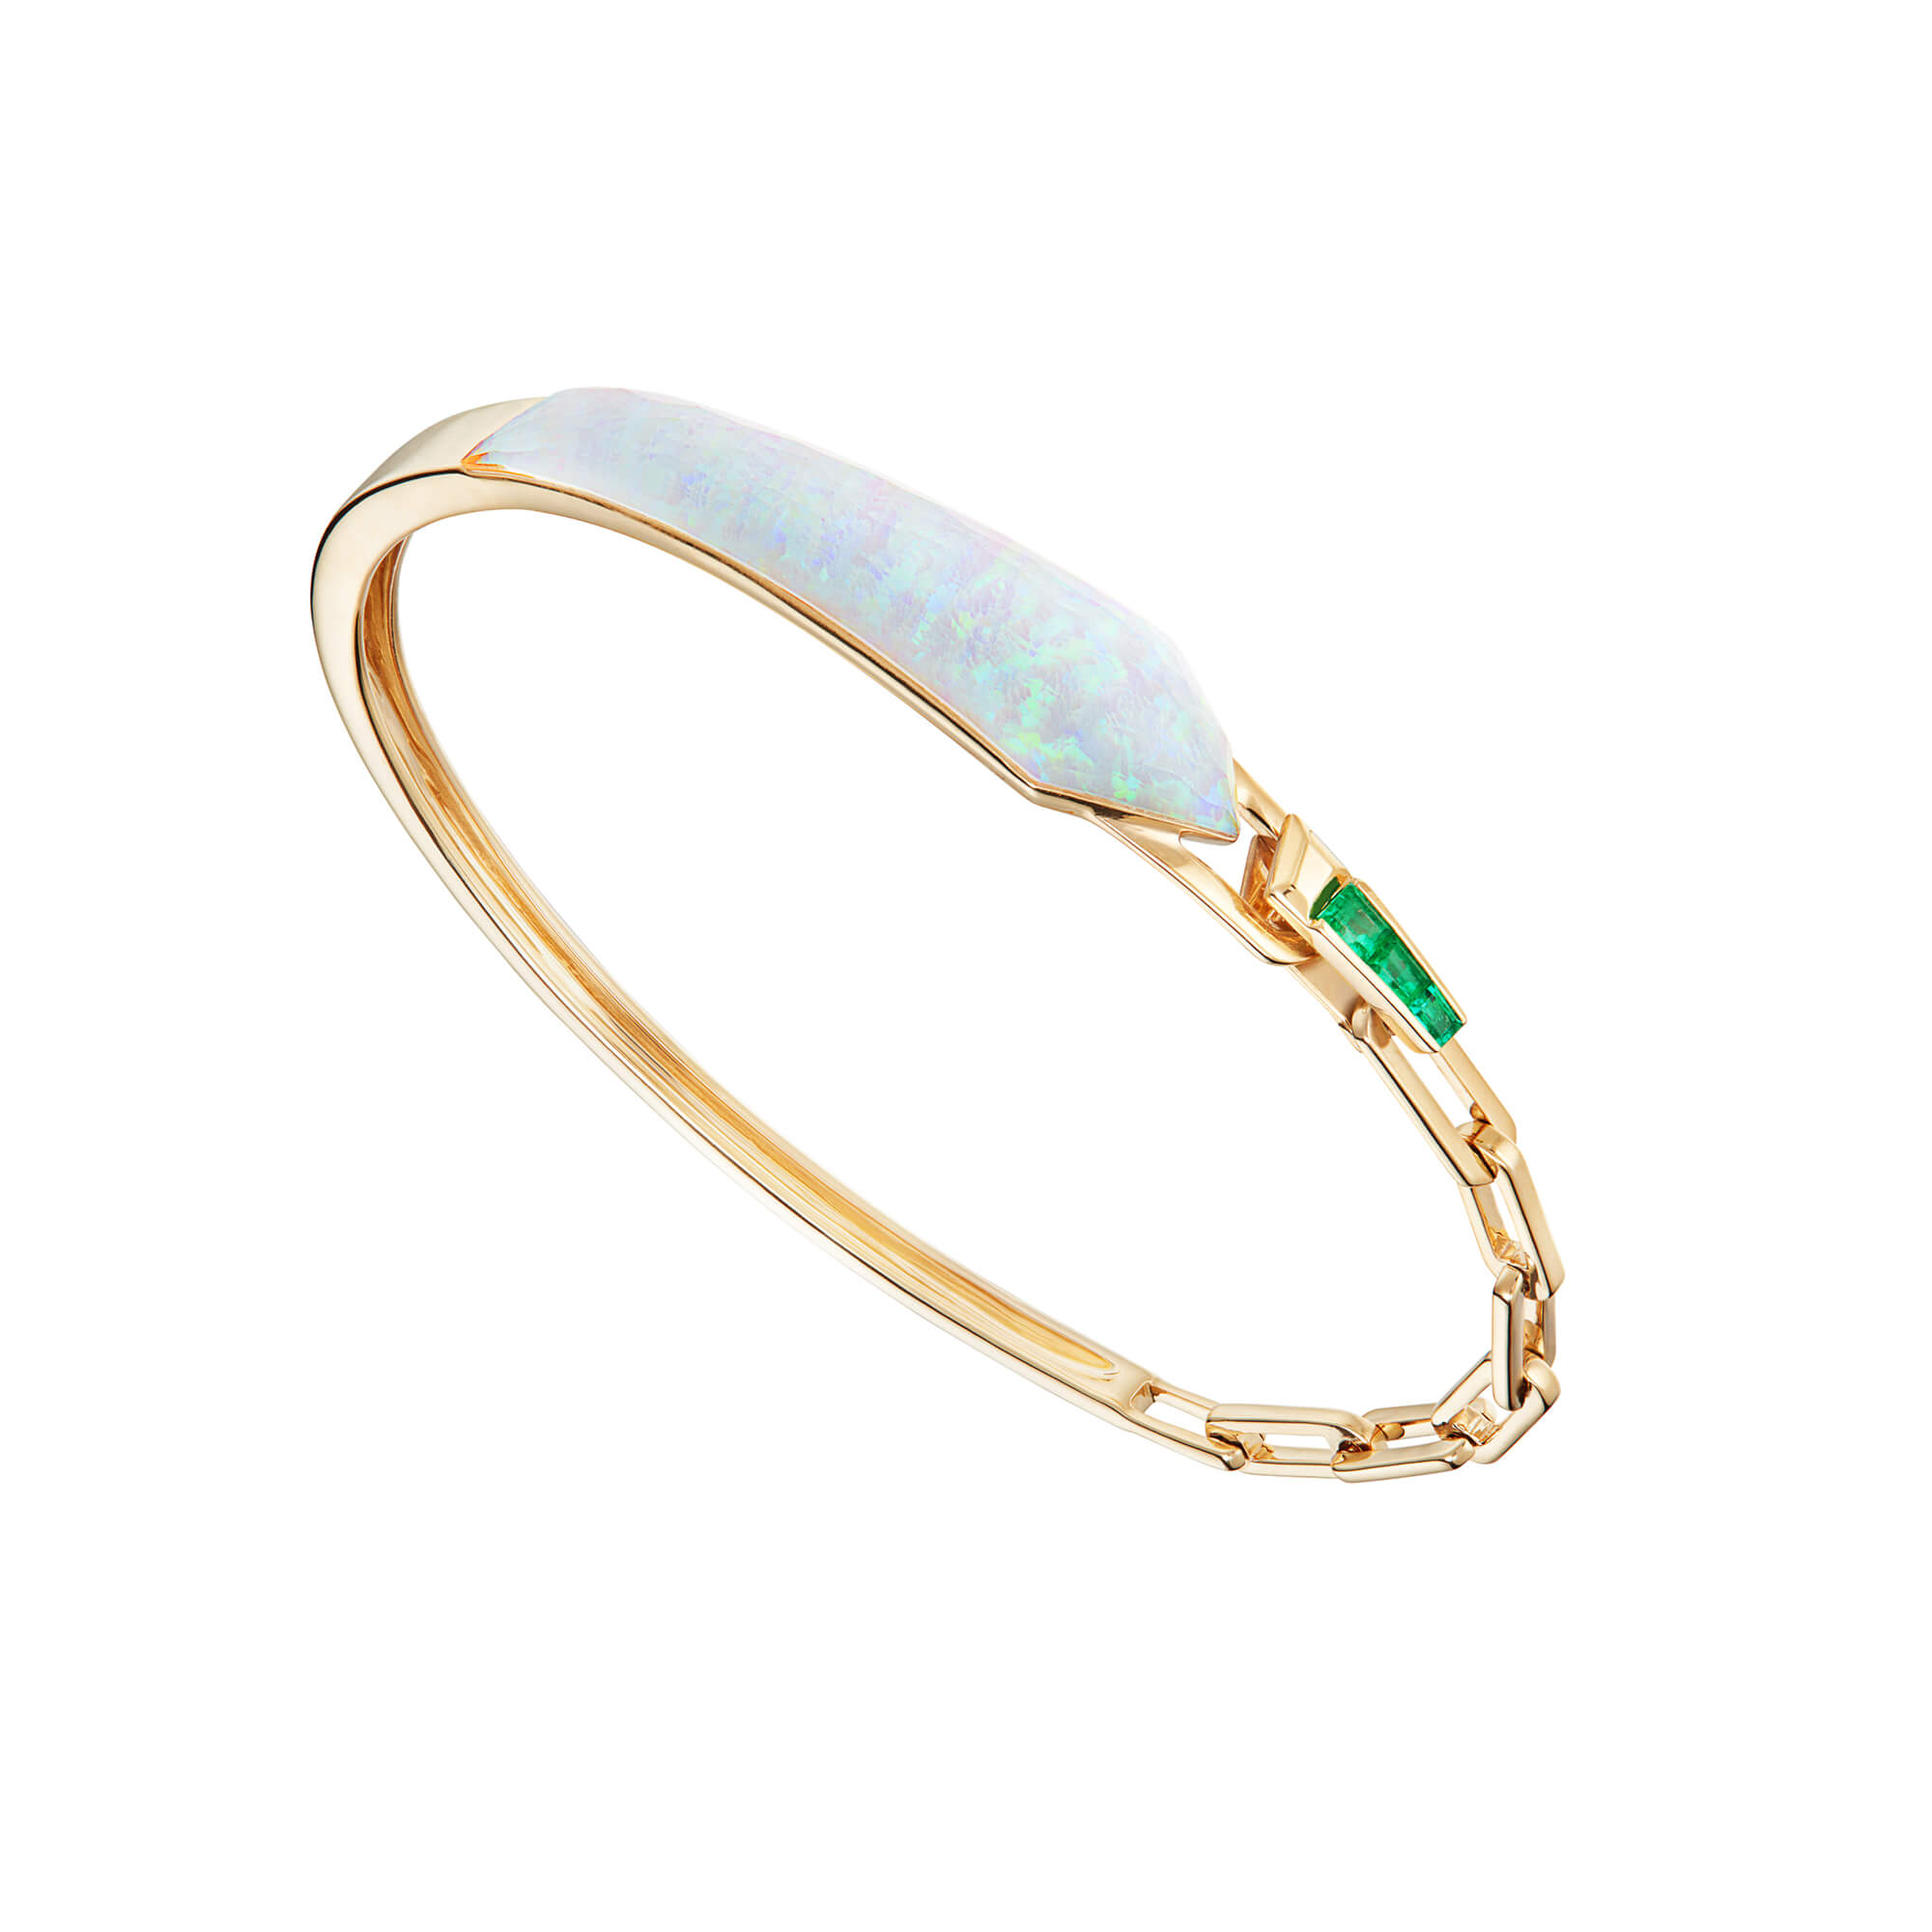 White Opalescent and Emeralds Shard Linked Bracelet | CH₂